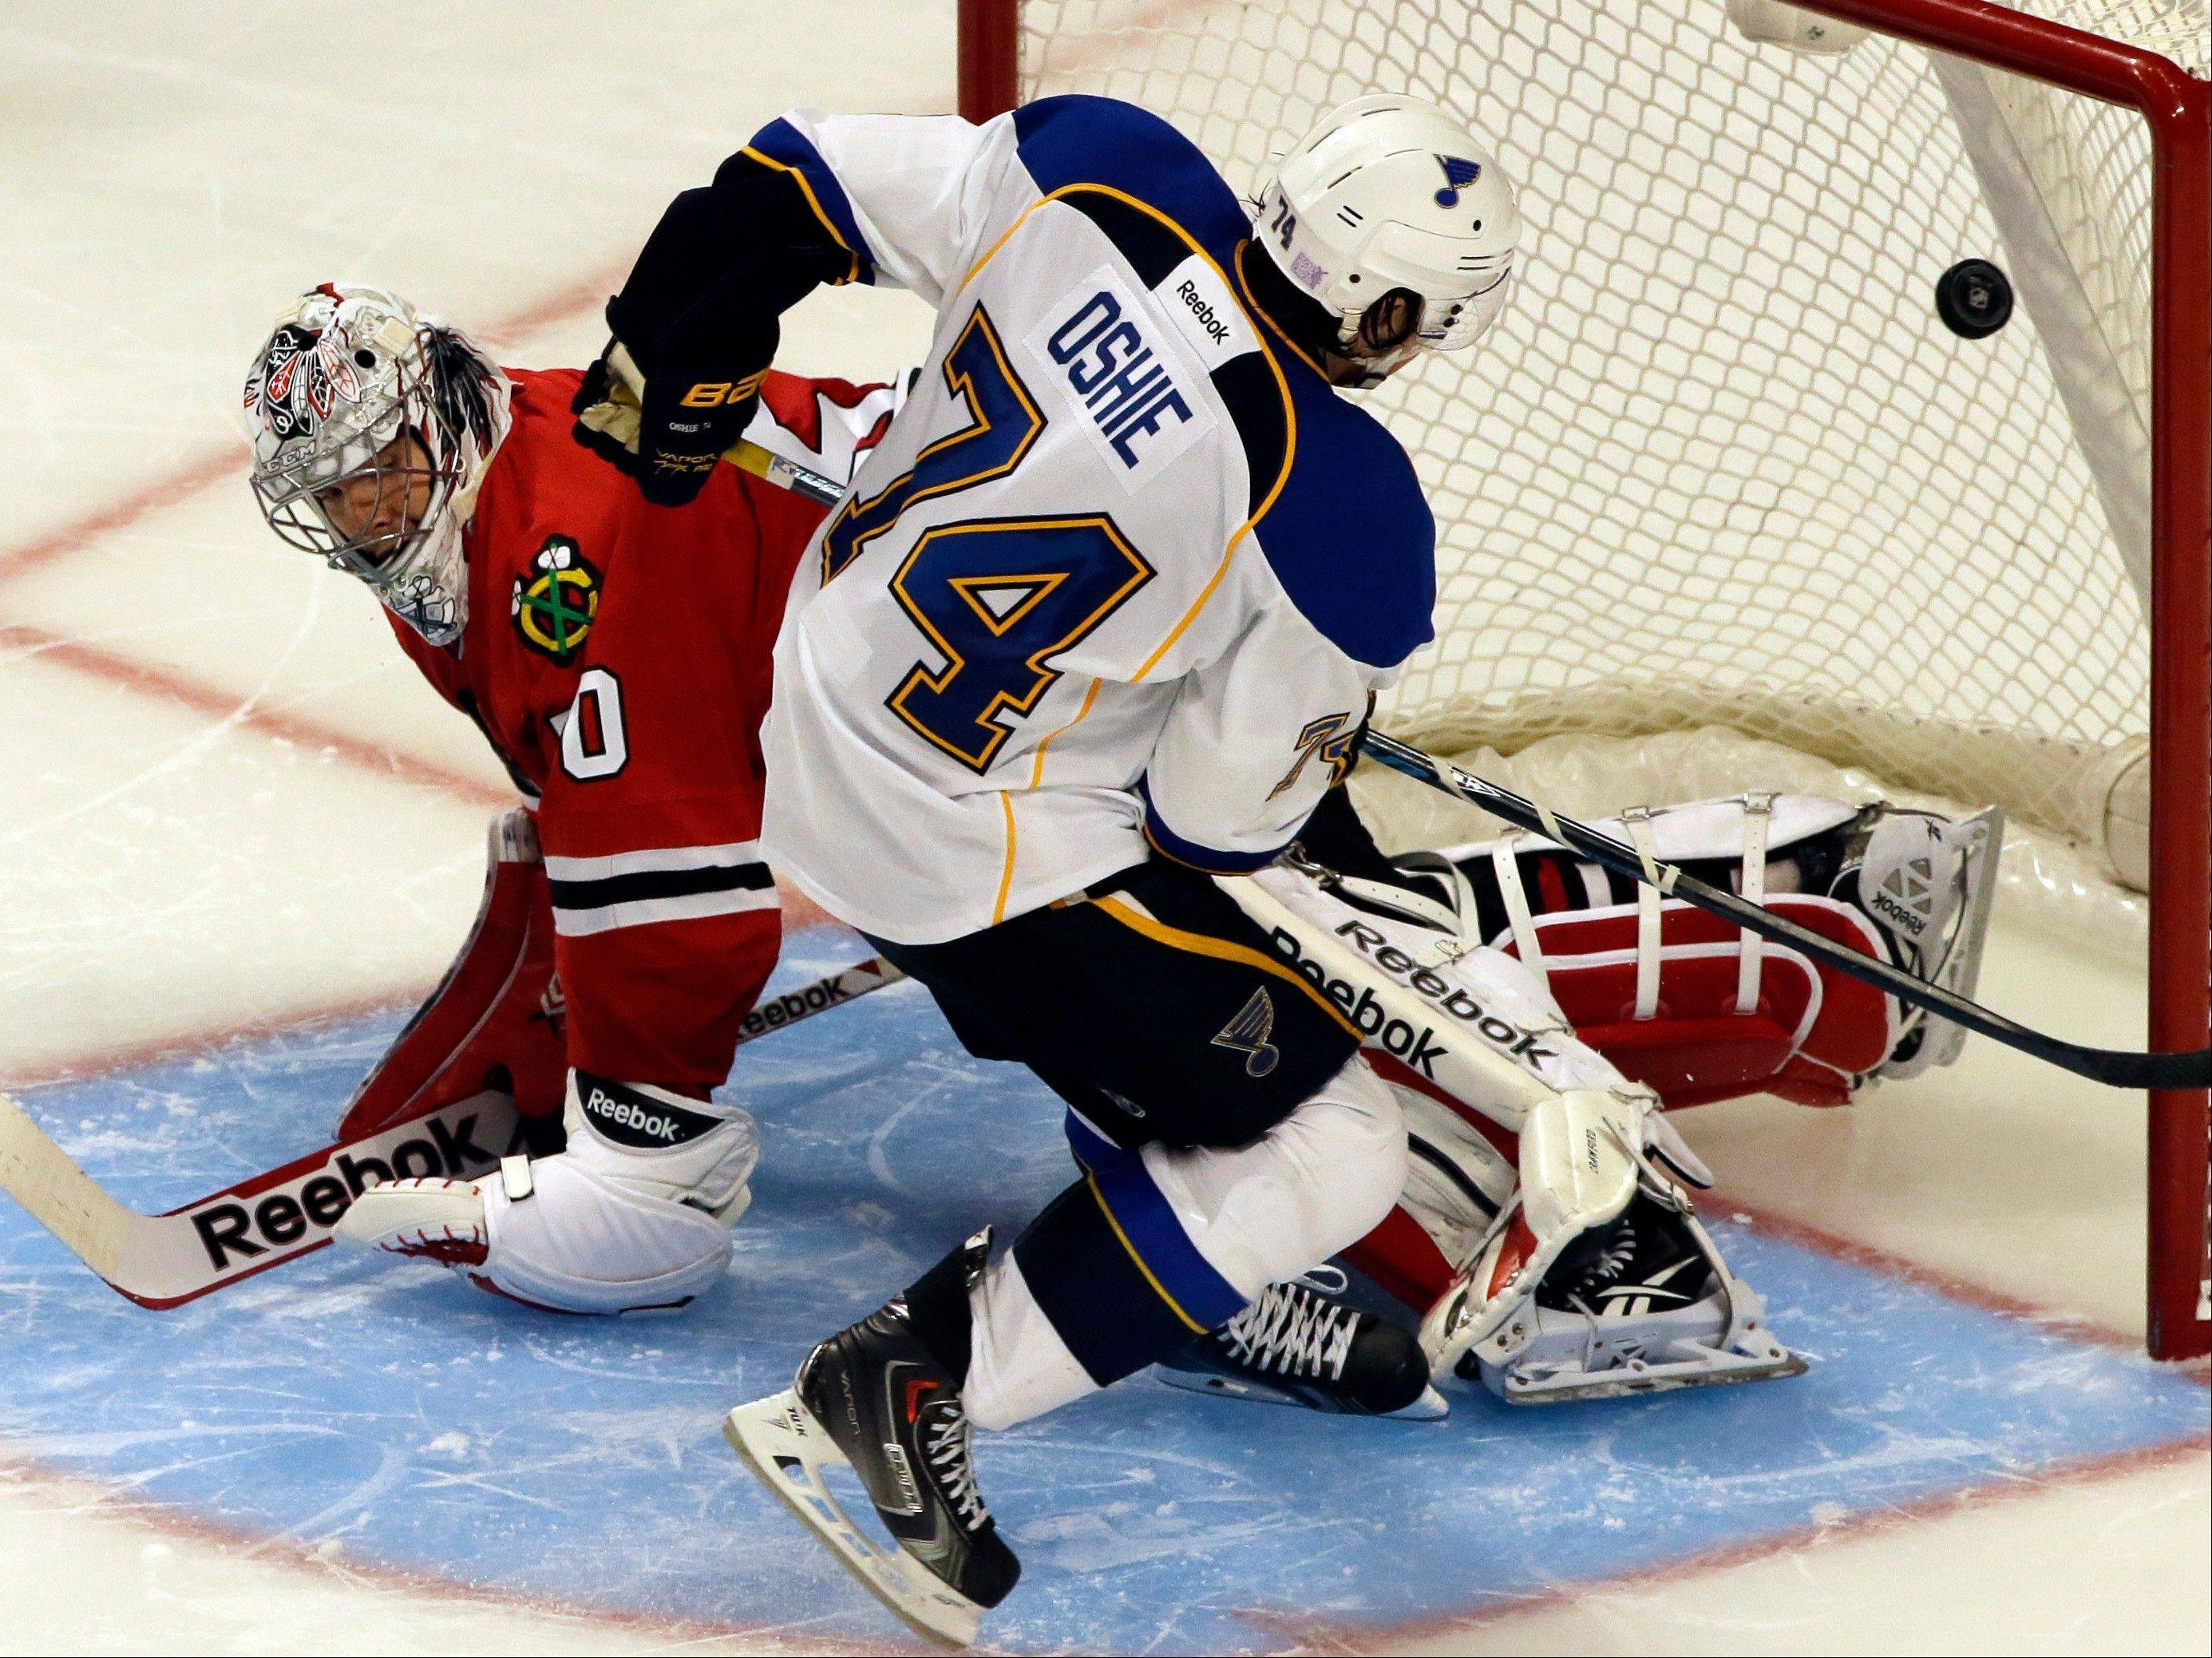 The Blues' T.J. Oshie scores on Blackhawks goalie Corey Crawford for the only goal in the shootout Thursday night at the United Center.